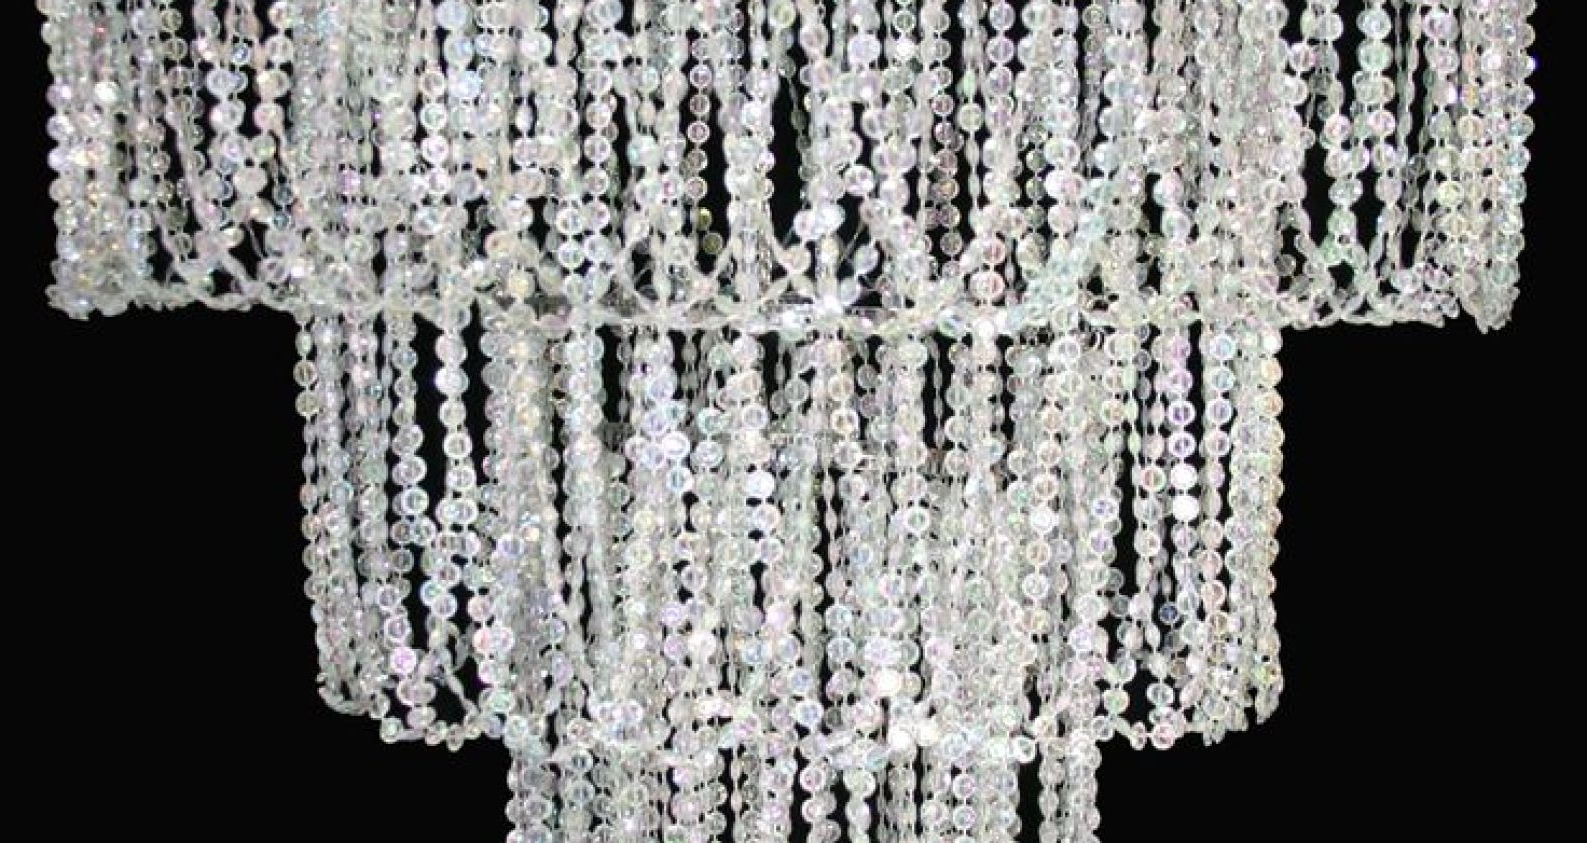 Most Current Chandelier : Stunning Faux Crystal Chandelier Wedding Bead Strands Regarding Faux Crystal Chandelier Wedding Bead Strands (View 12 of 20)